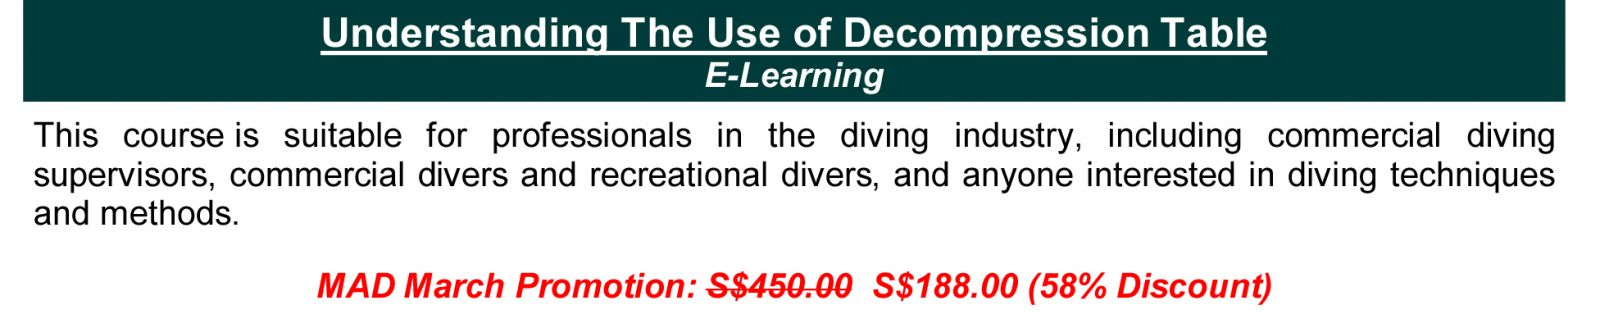 http://www.kbatraining.org/courses/Commercial-Diving/Competency-Development/Understanding-The-Use-of-Decompression-Table